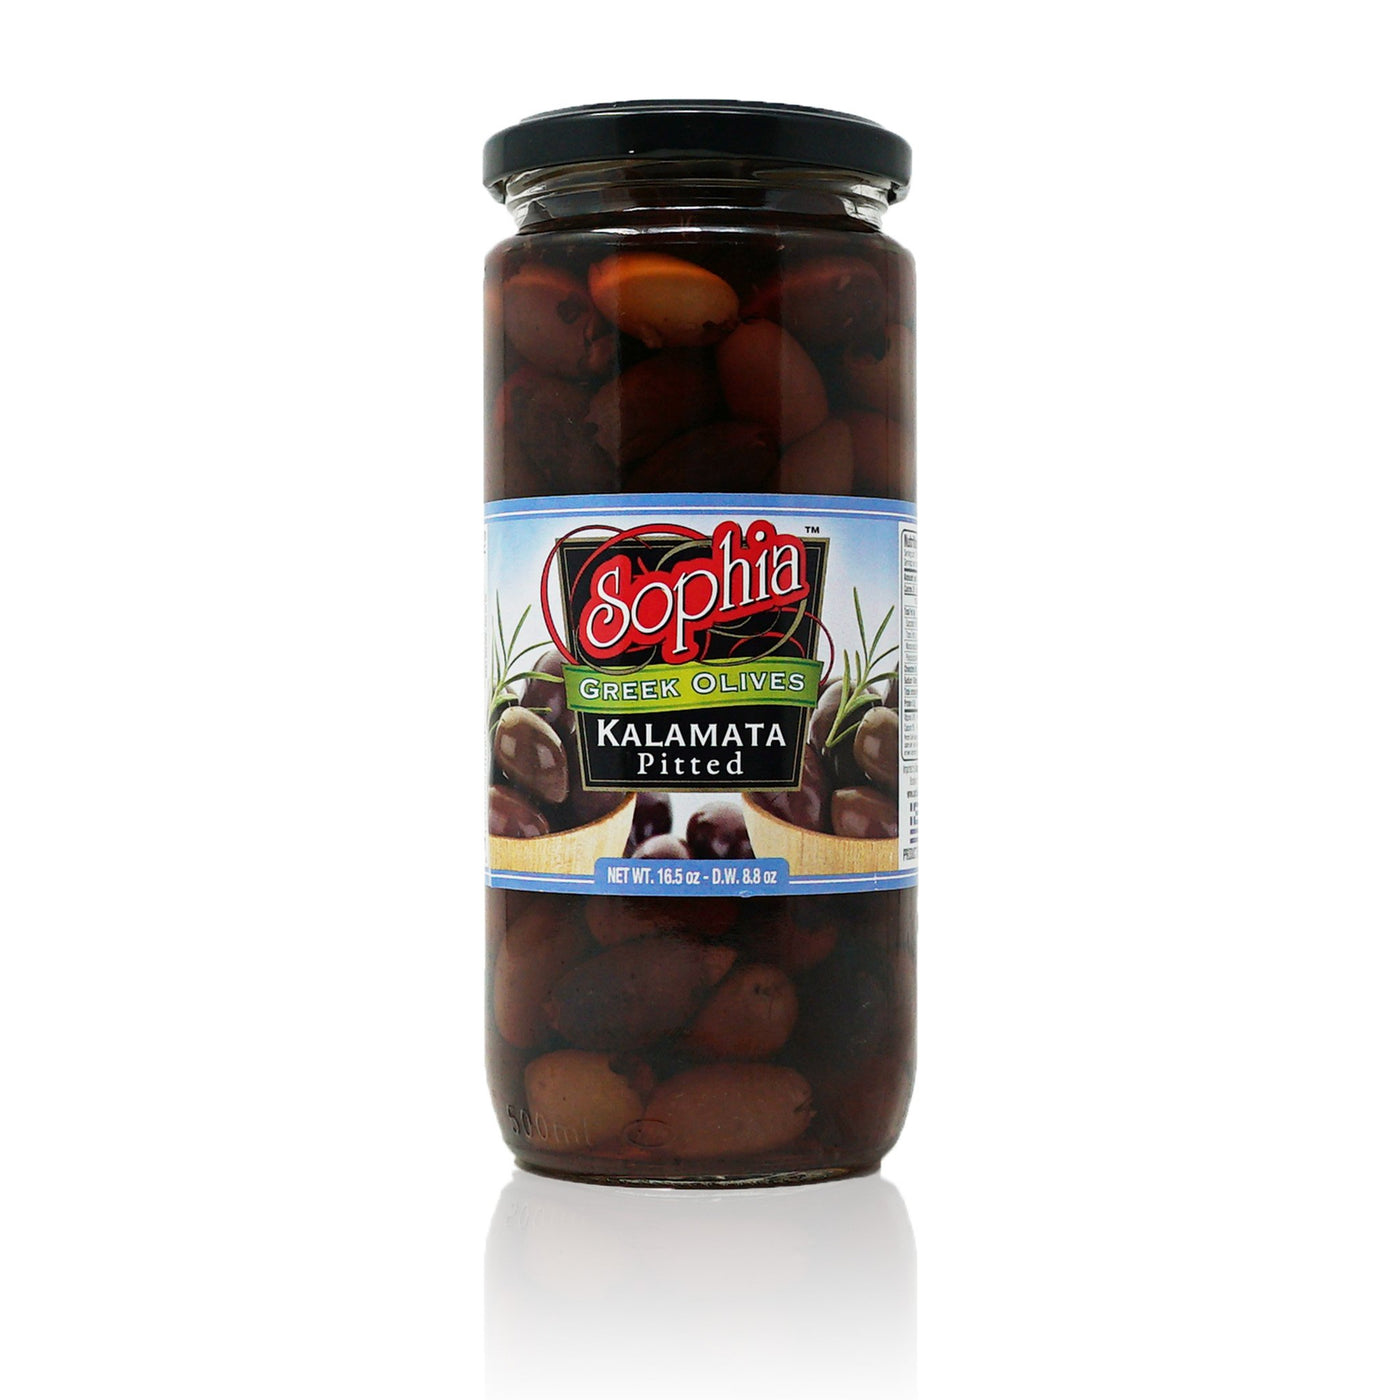 Sophia Olives - Greek Kalamata Pitted 16oz